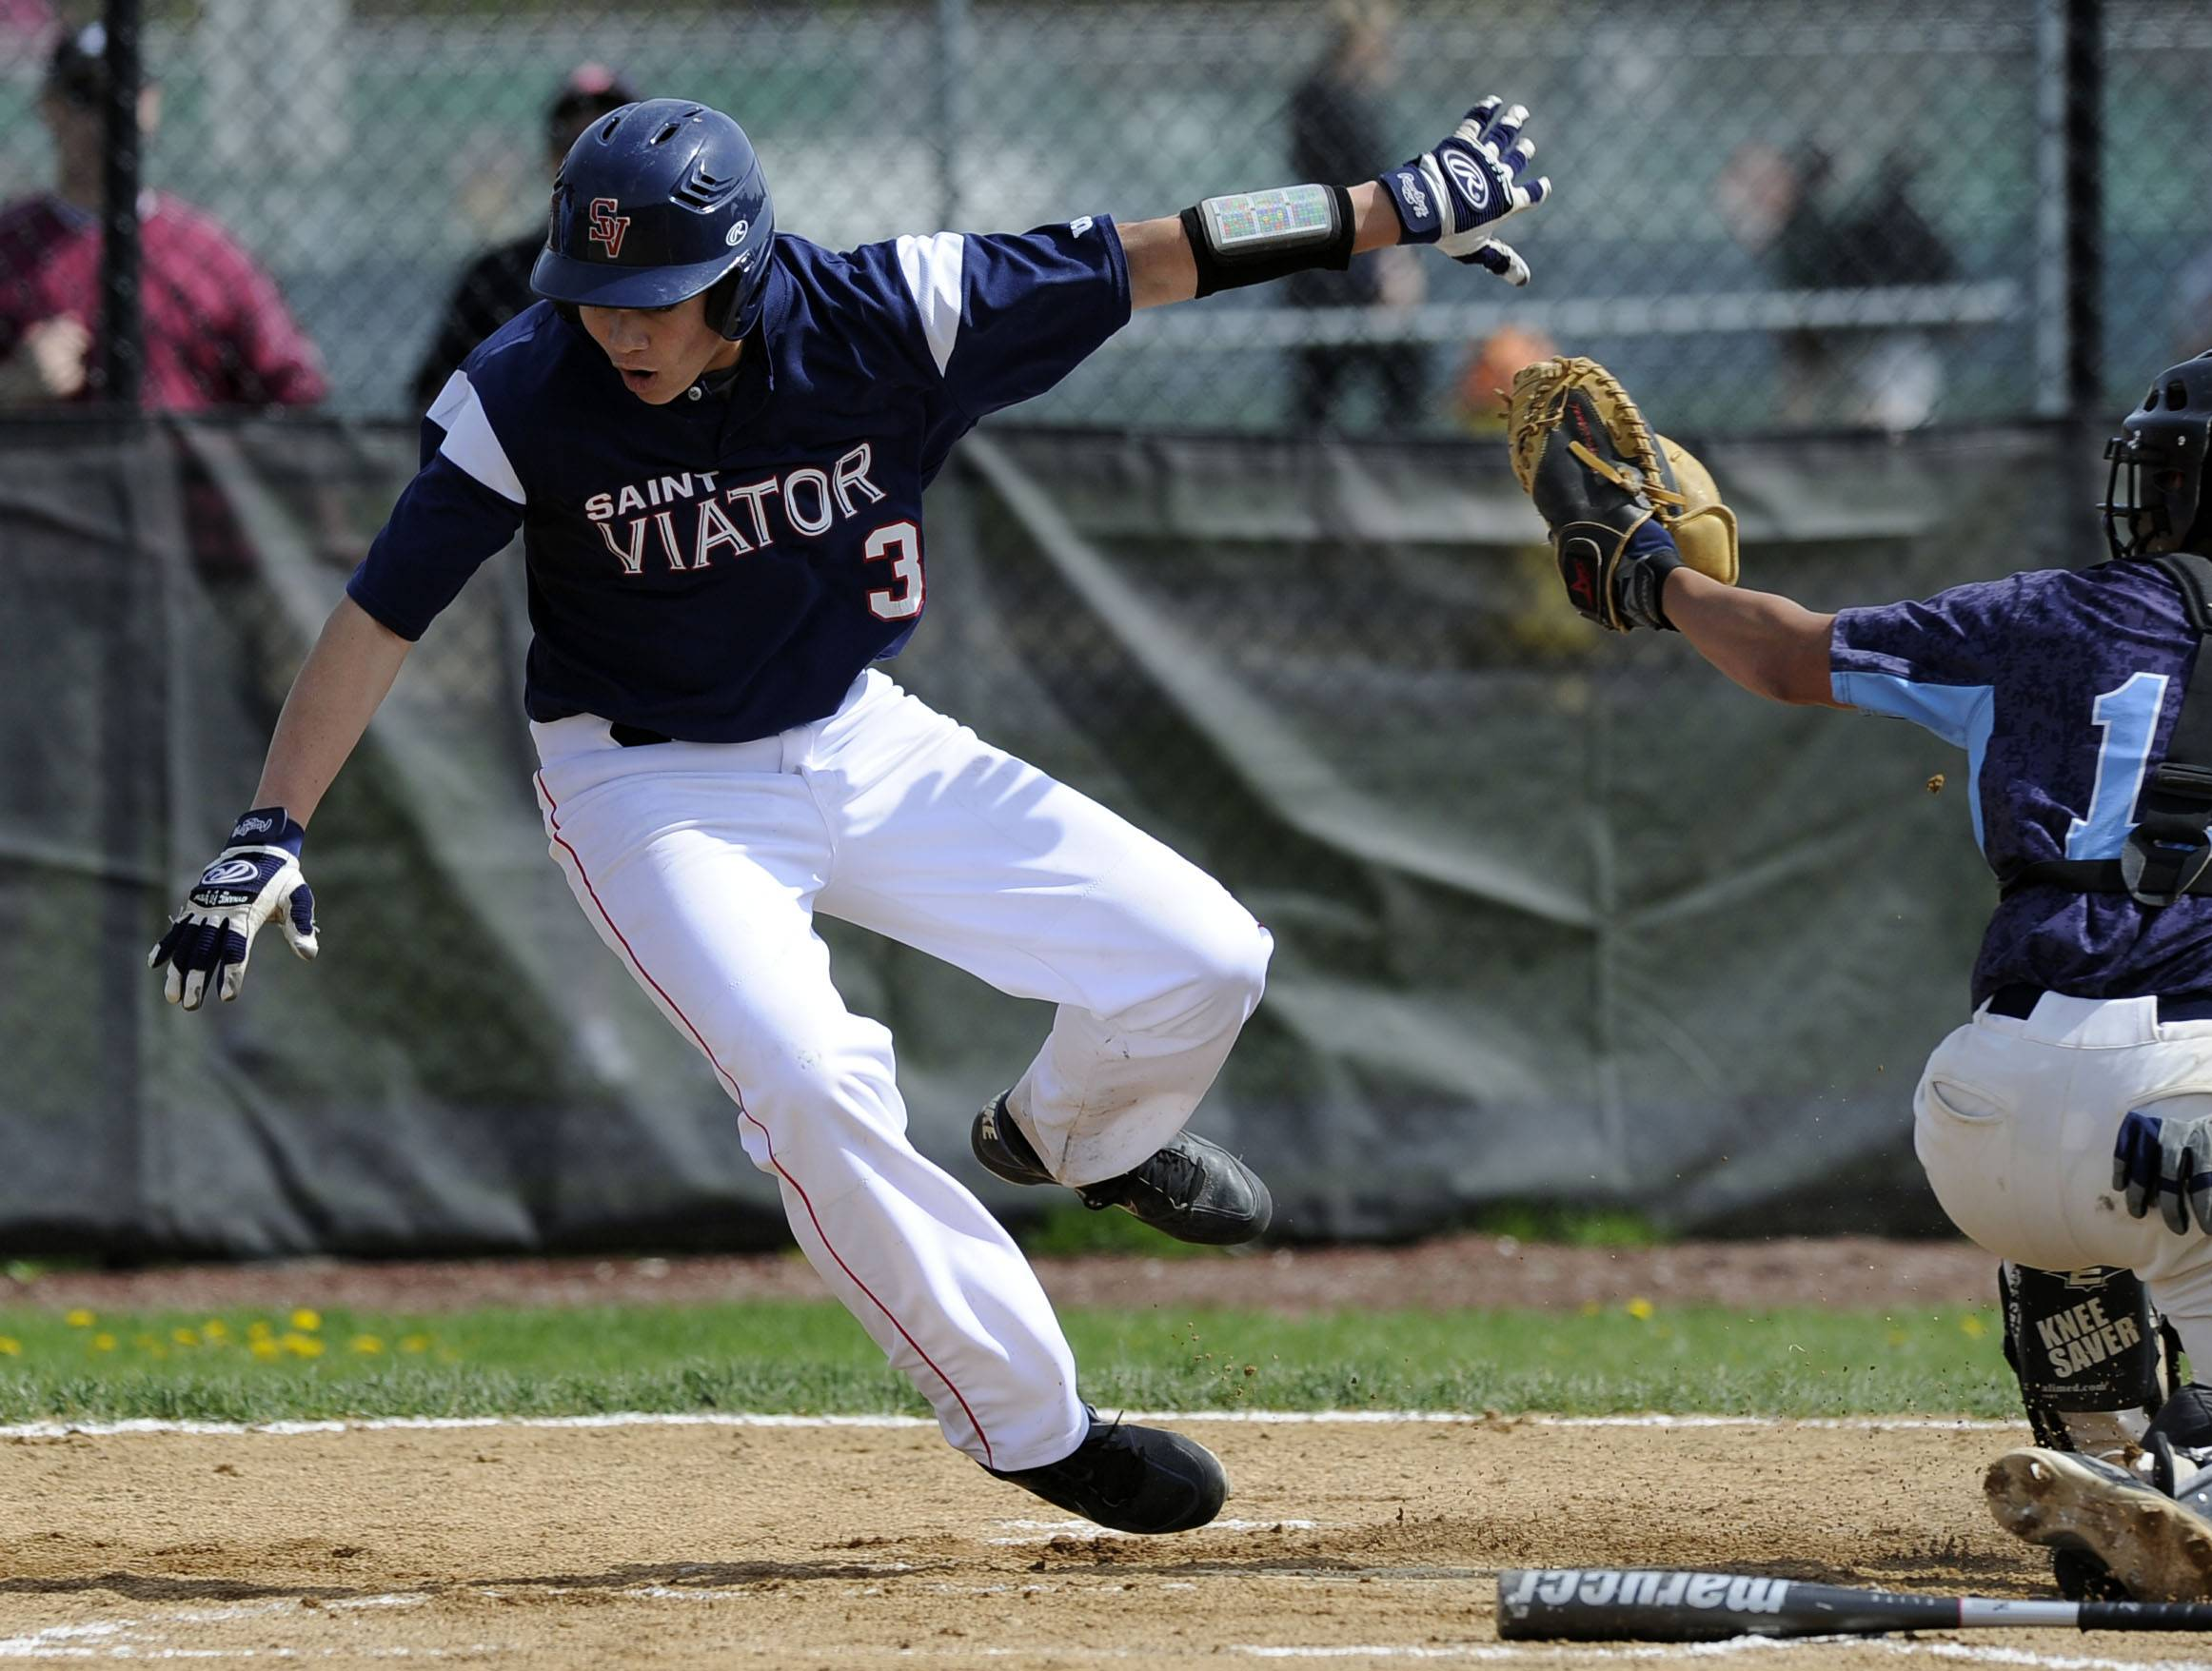 St. Viator's Jack Napoleon is tagged out at home by Prospect catcher Grant Miller on a squeeze attempt Saturday at Prospect.